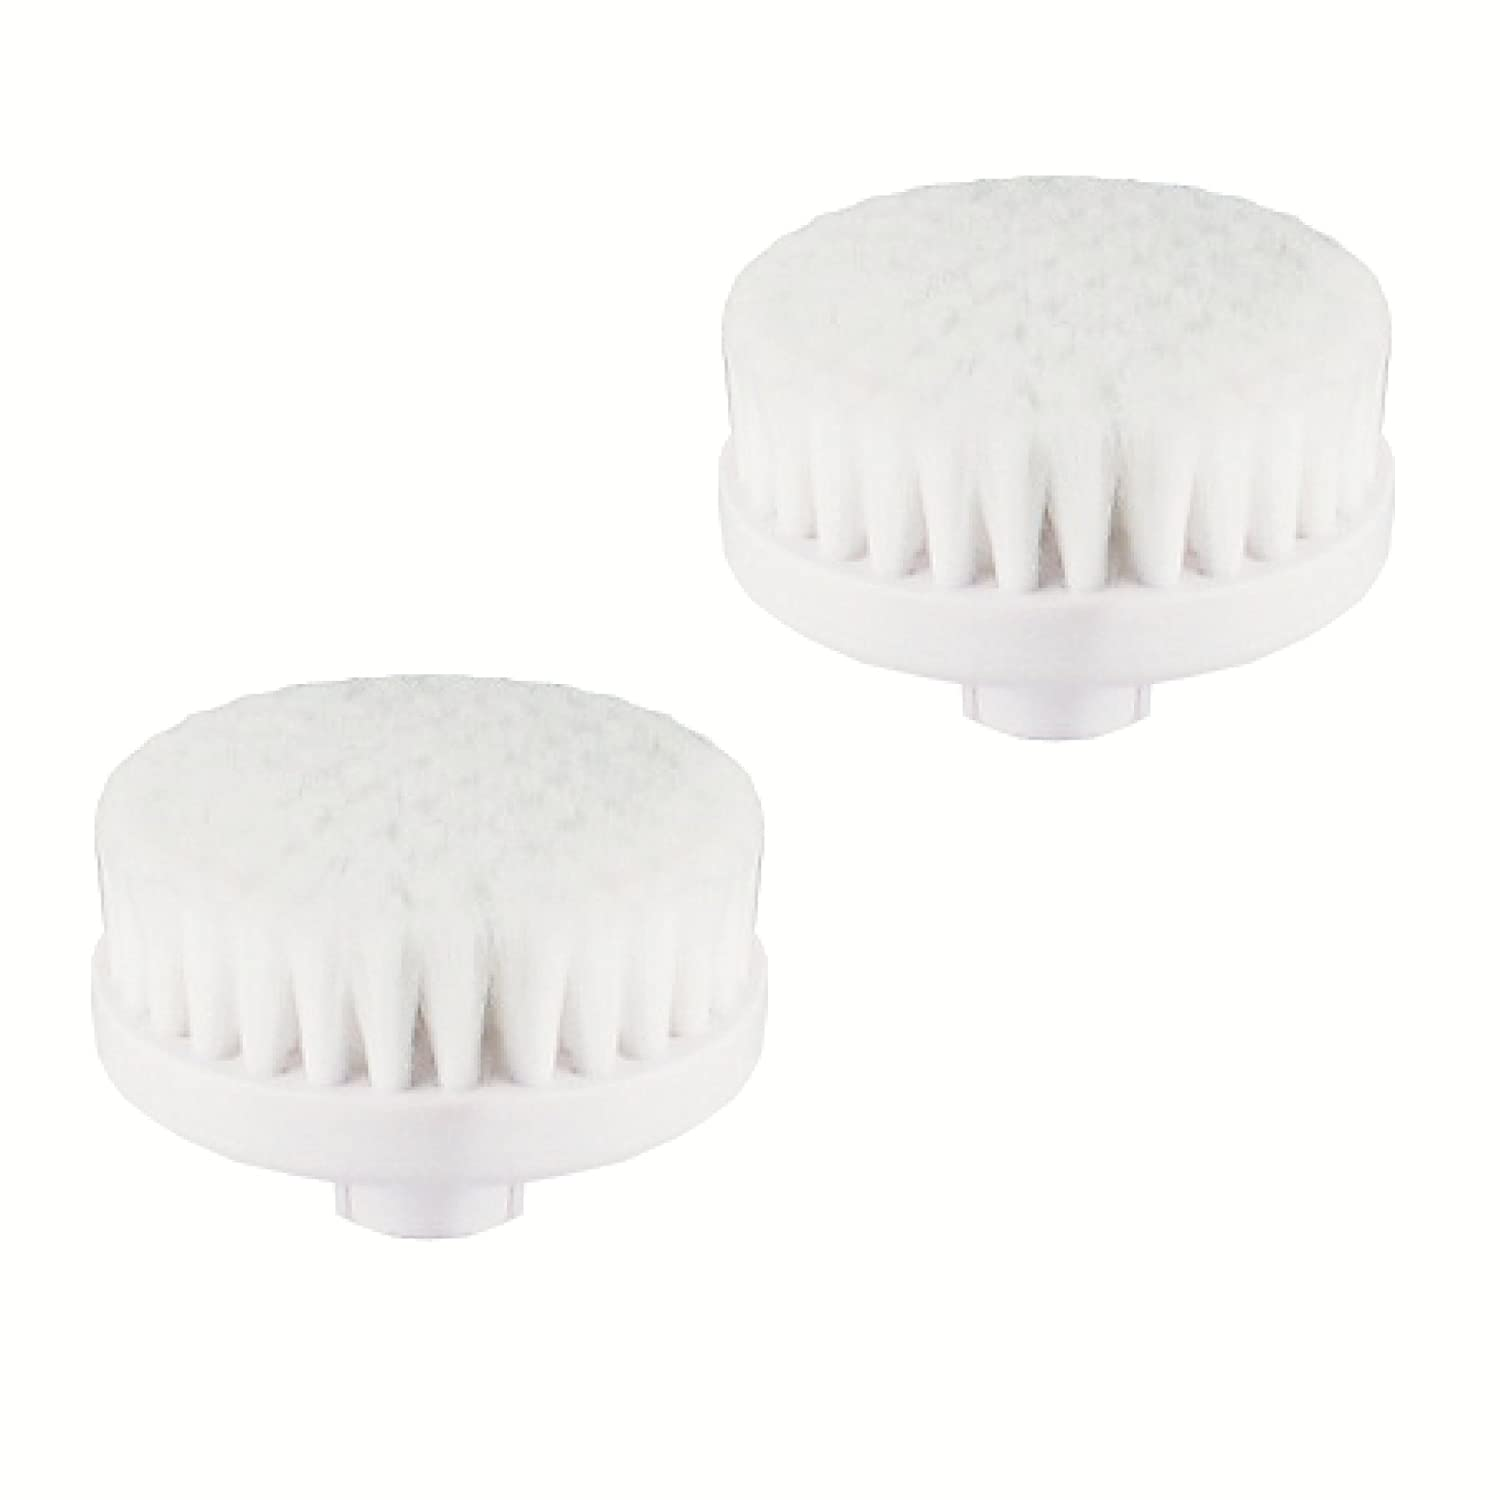 Vitagoods Replacement Cleansing Brush Heads For Perfect Skin, Set of 2, 27.22g Vita goods VG34003-0002